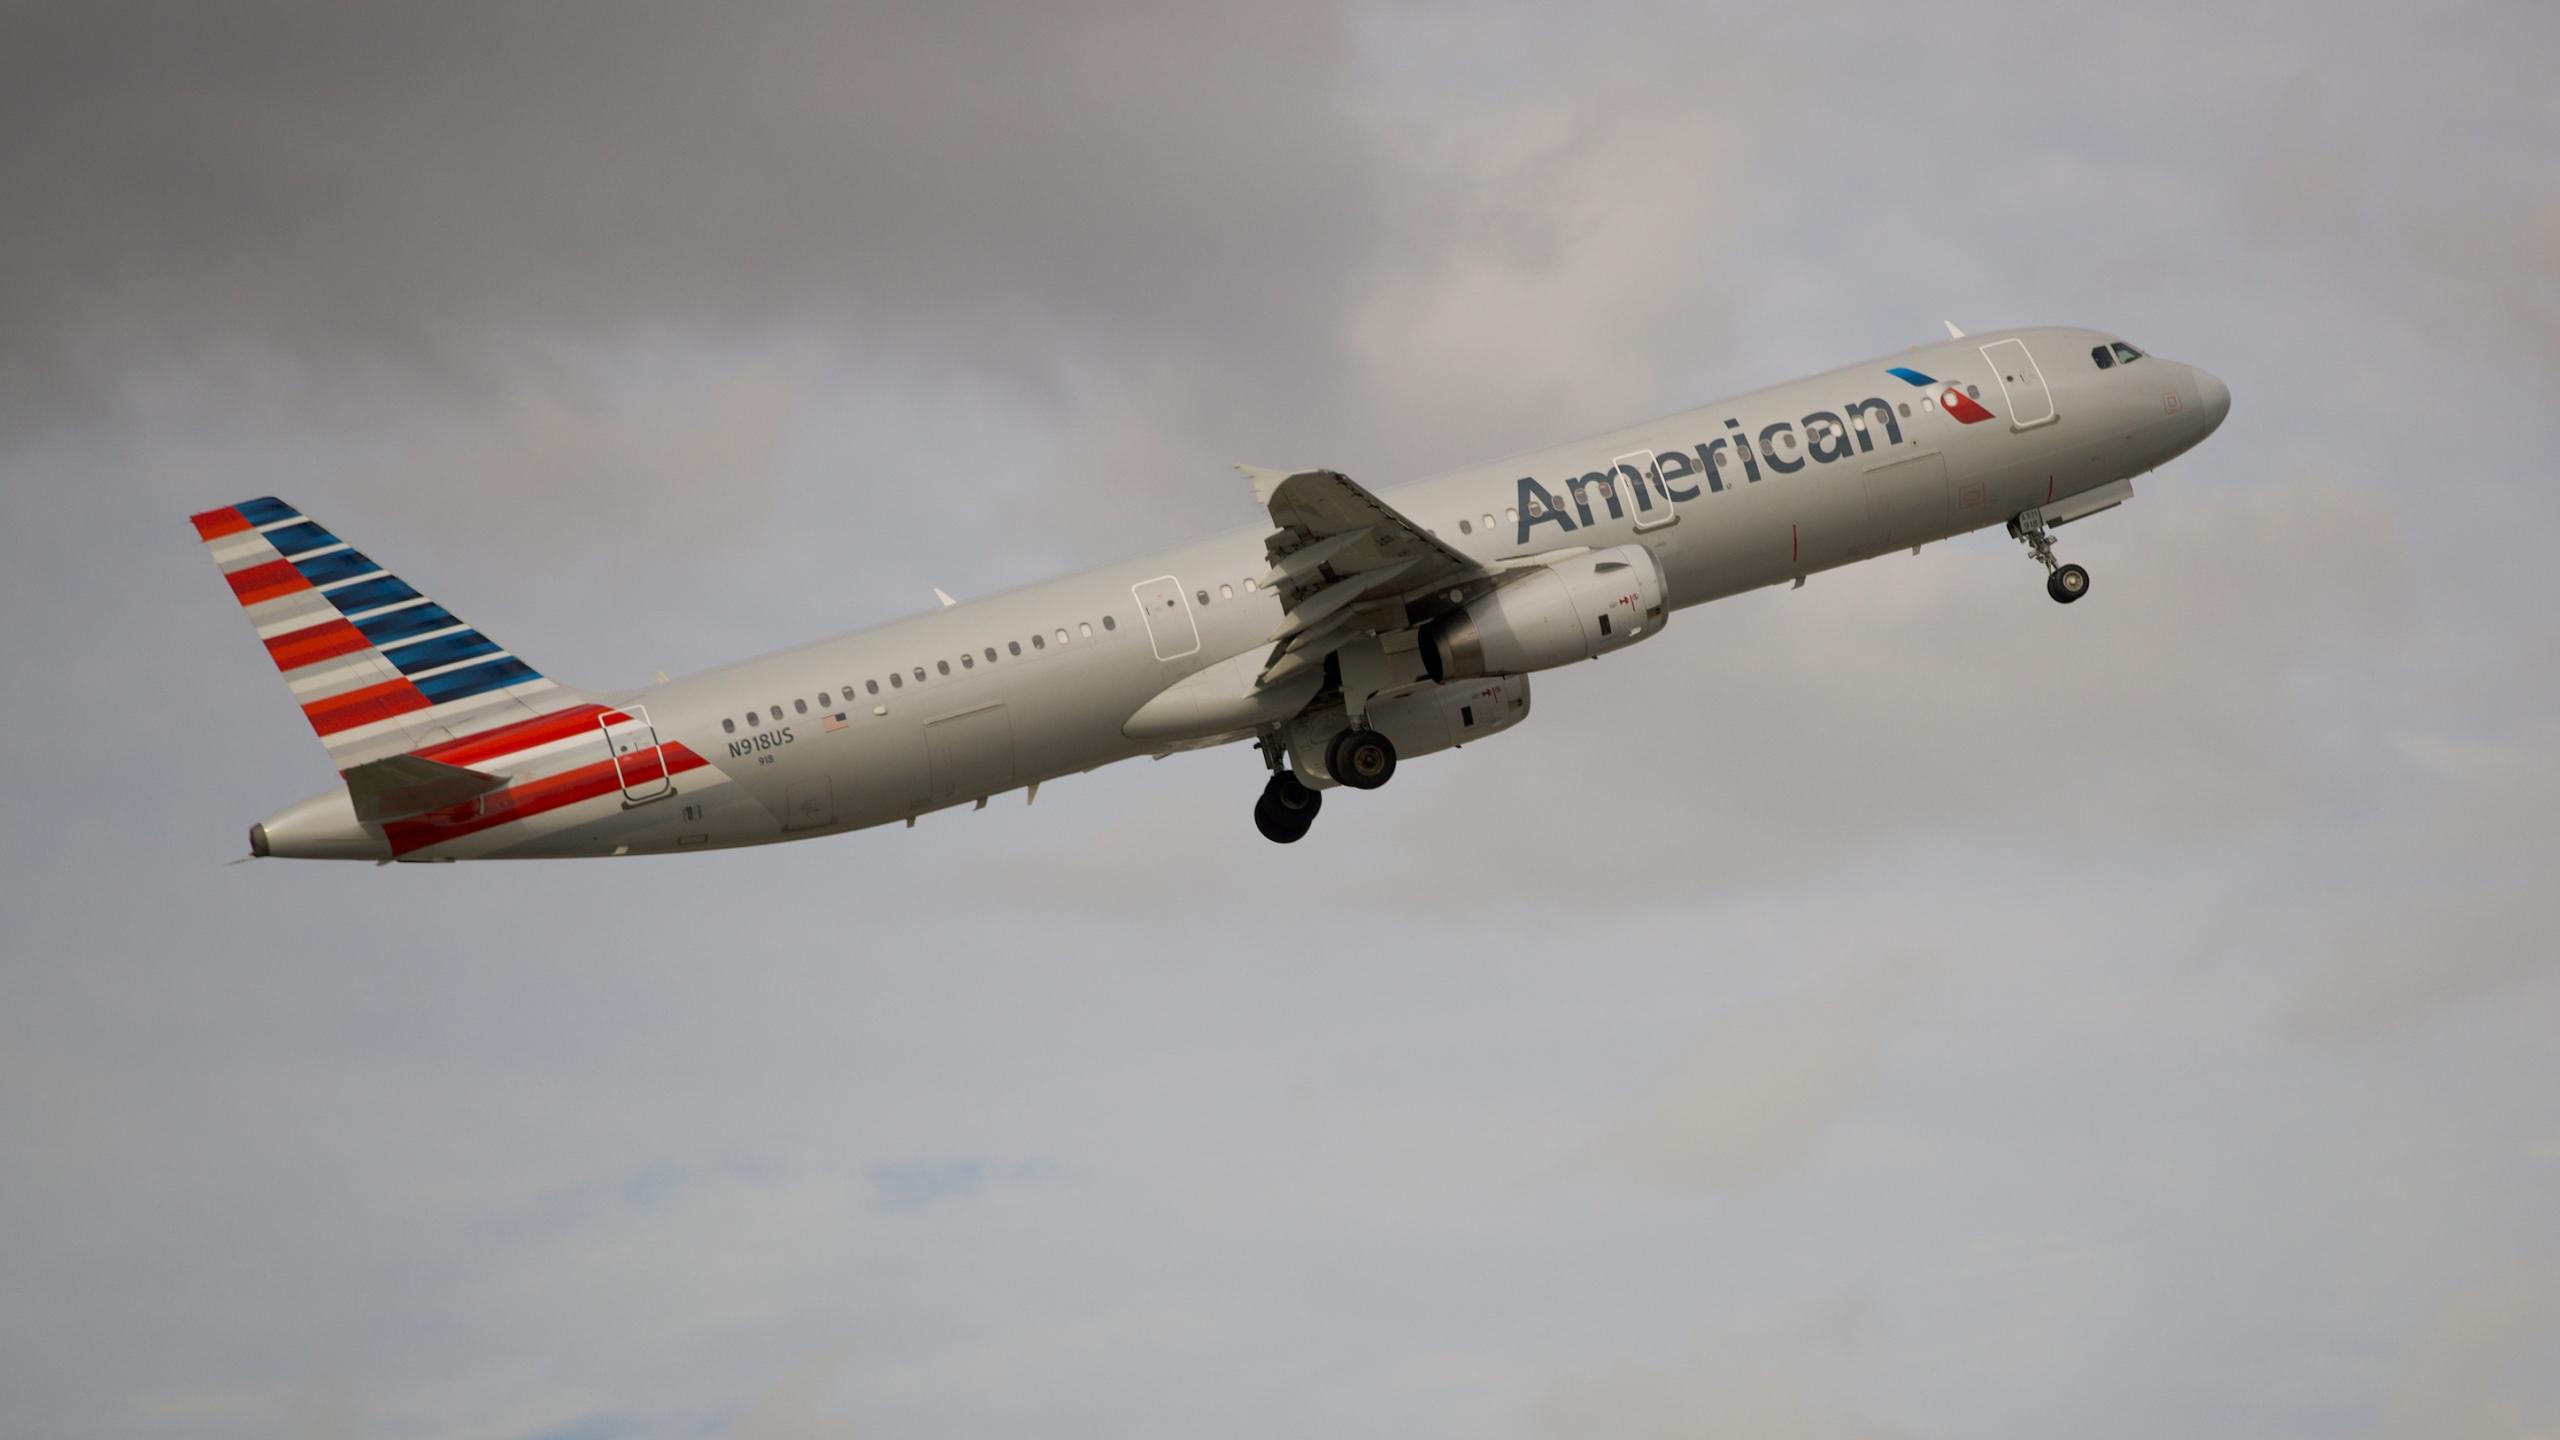 American_Airlines-Labor_27434-159532.jpg47152934